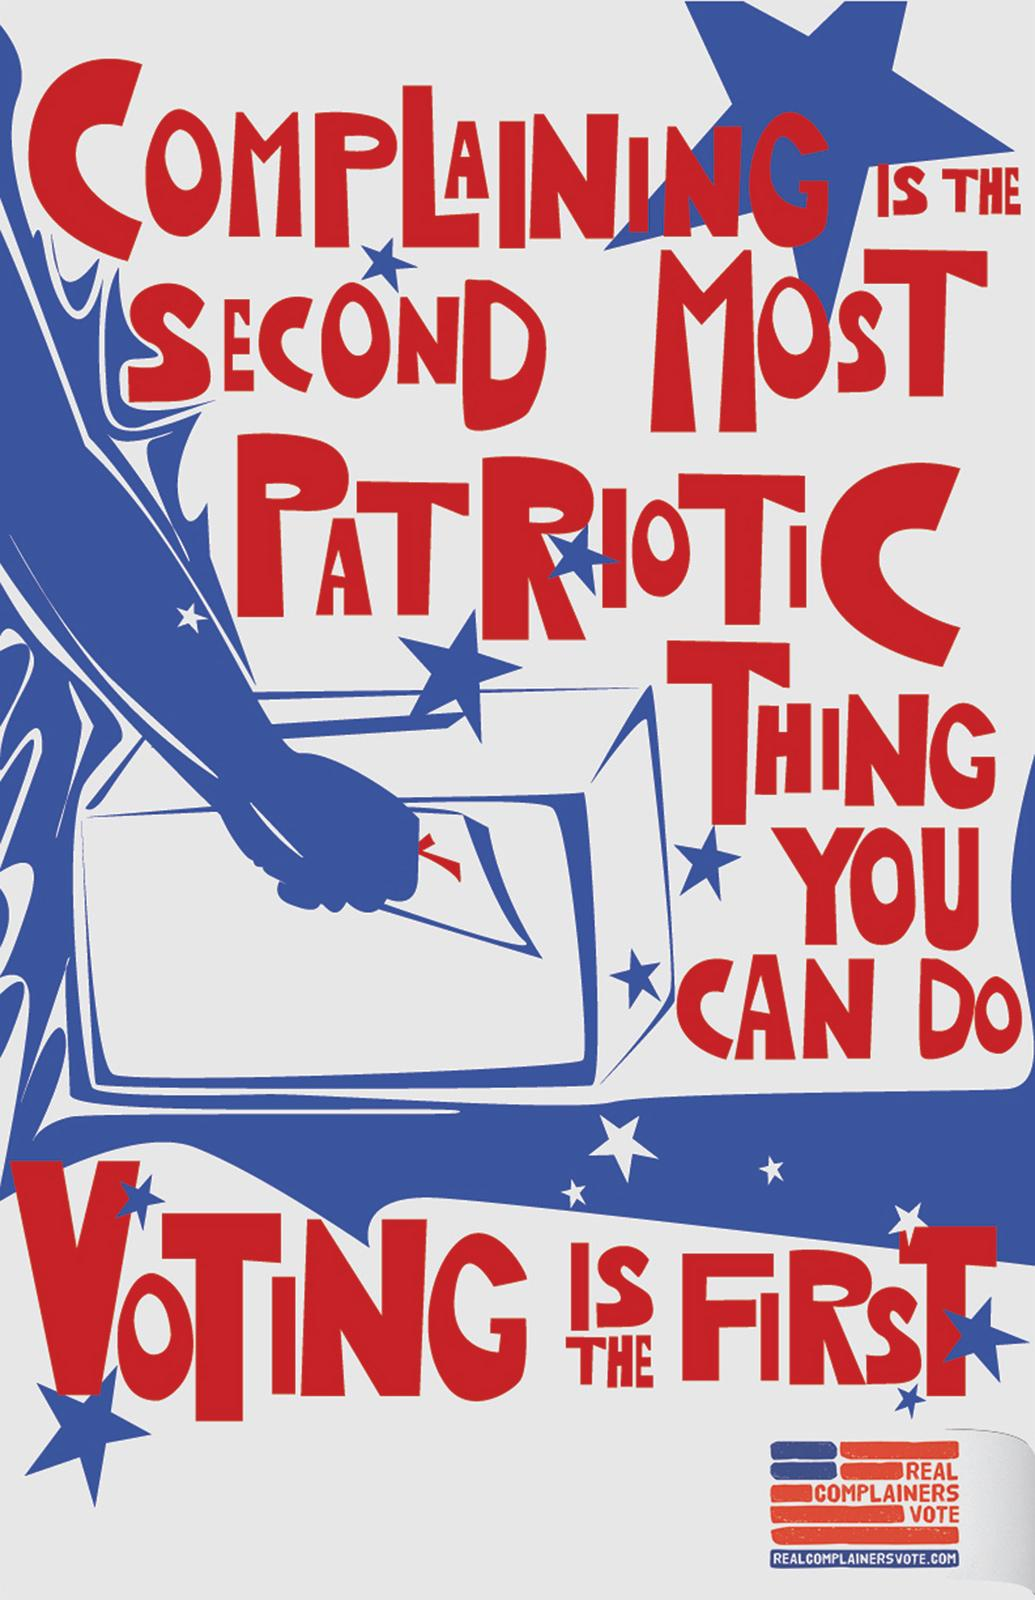 Real Complainers Vote Outdoor Ad -  Complaining is the second most patriotic thing you can do